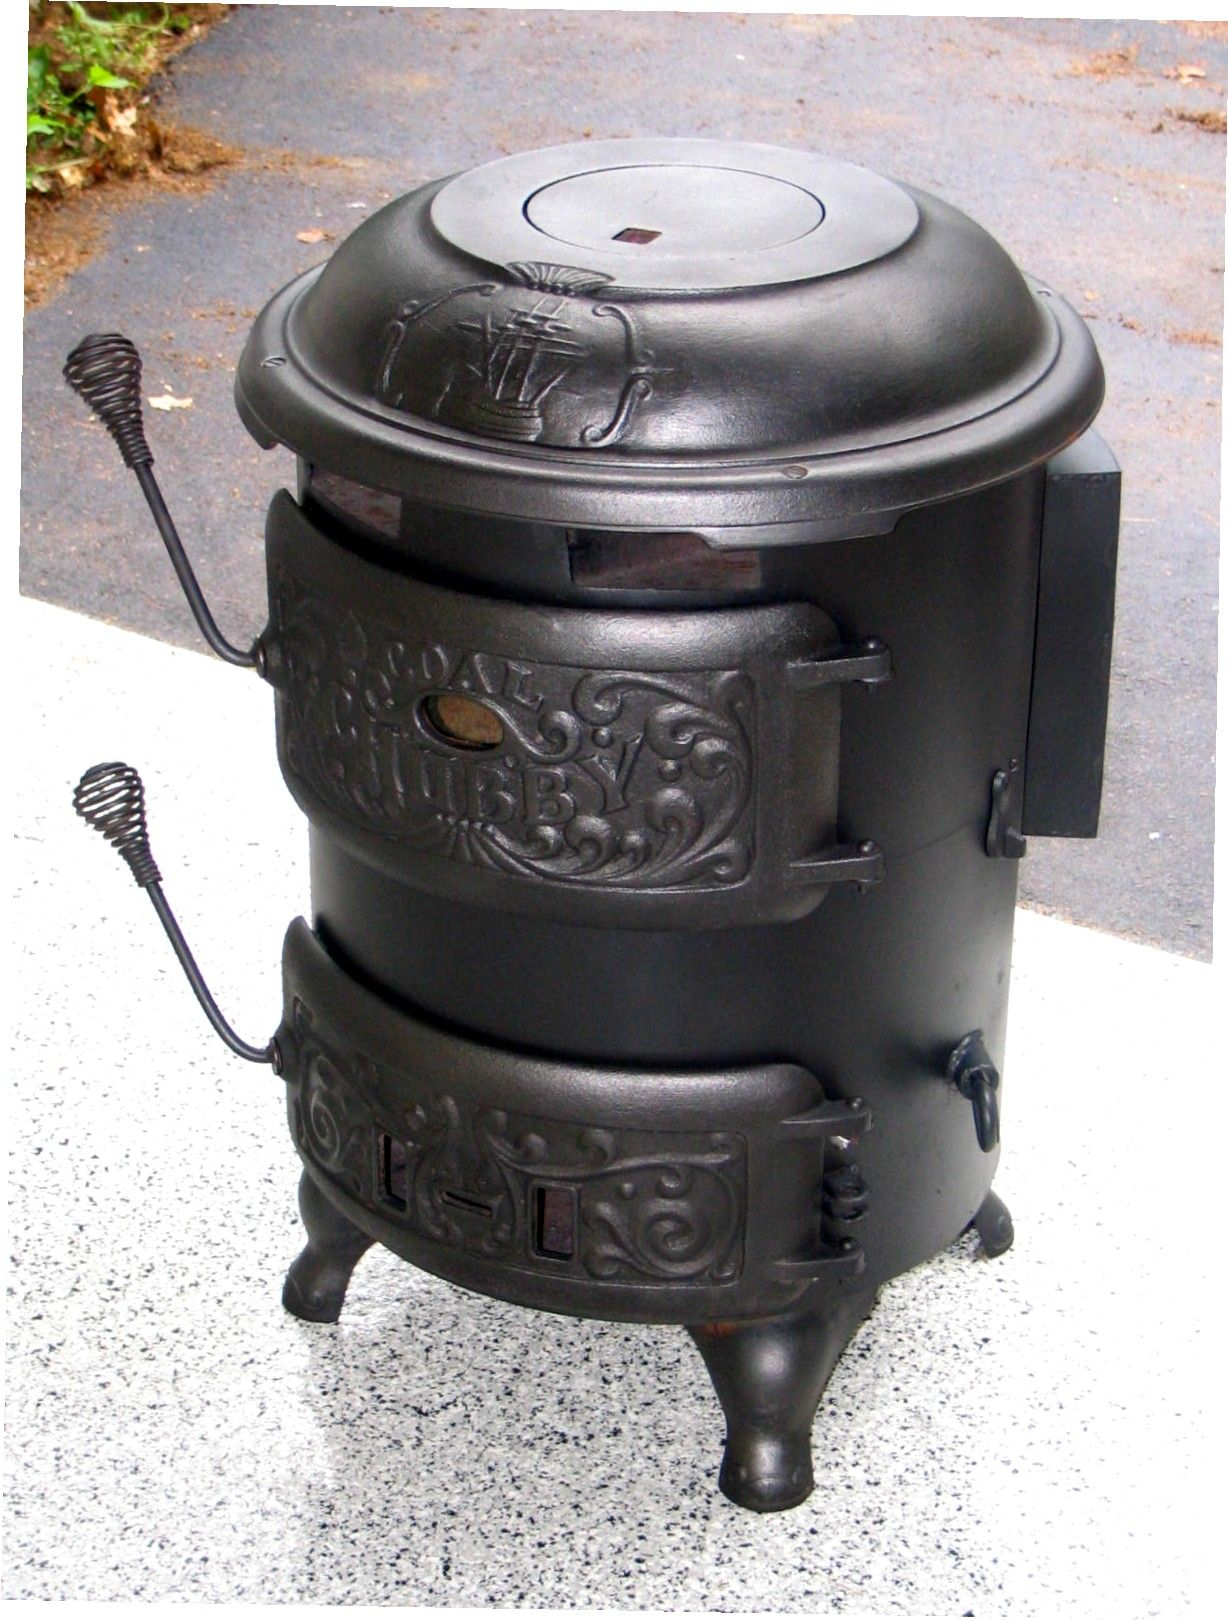 Old Style Wood Heater And You Can Cook On Top Wood Heater Antique Stove Small Wood Burning Stove